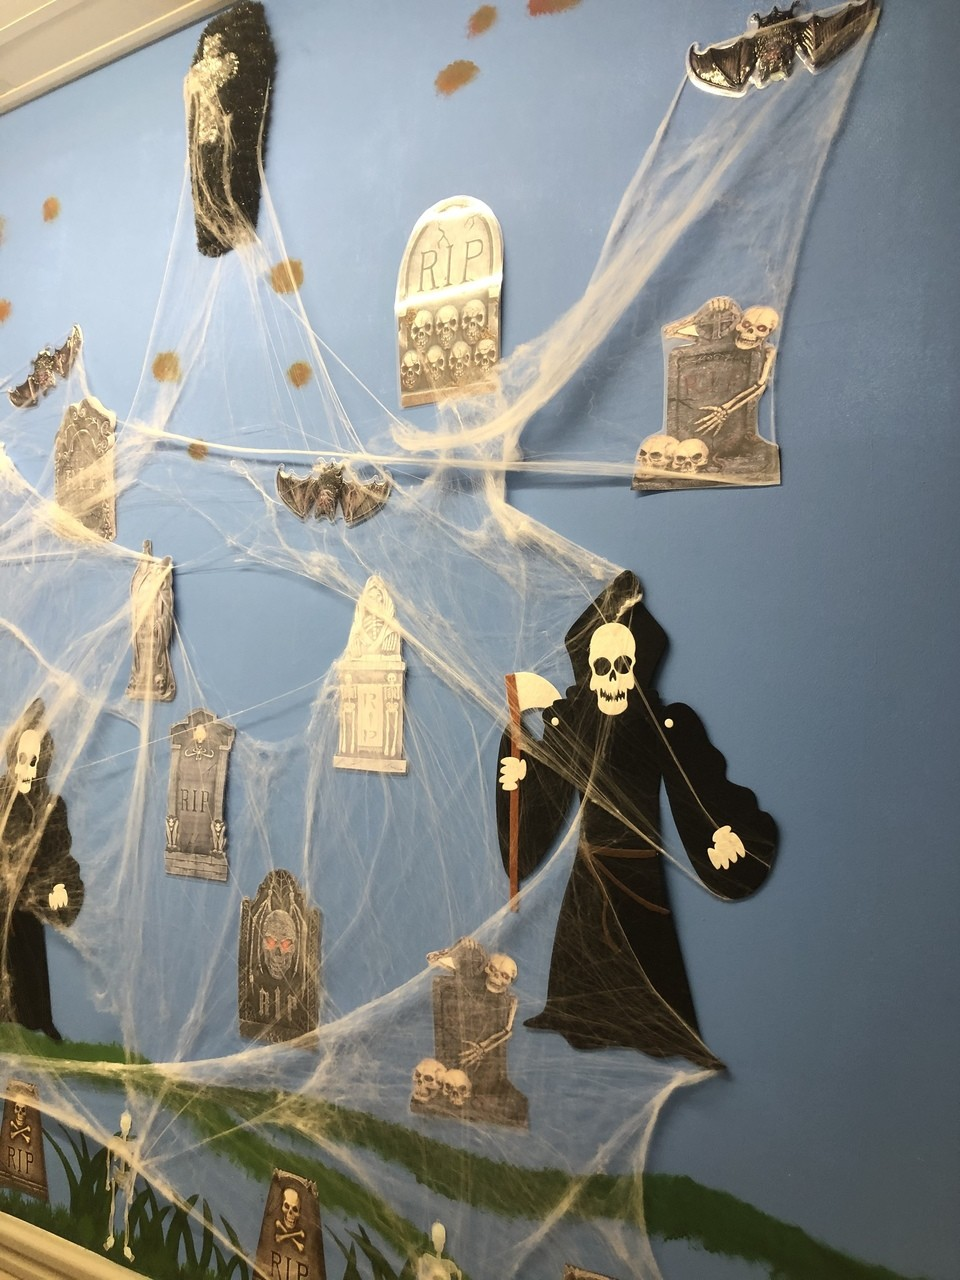 Spooky things going on in Asda Portadown  | Asda Portadown